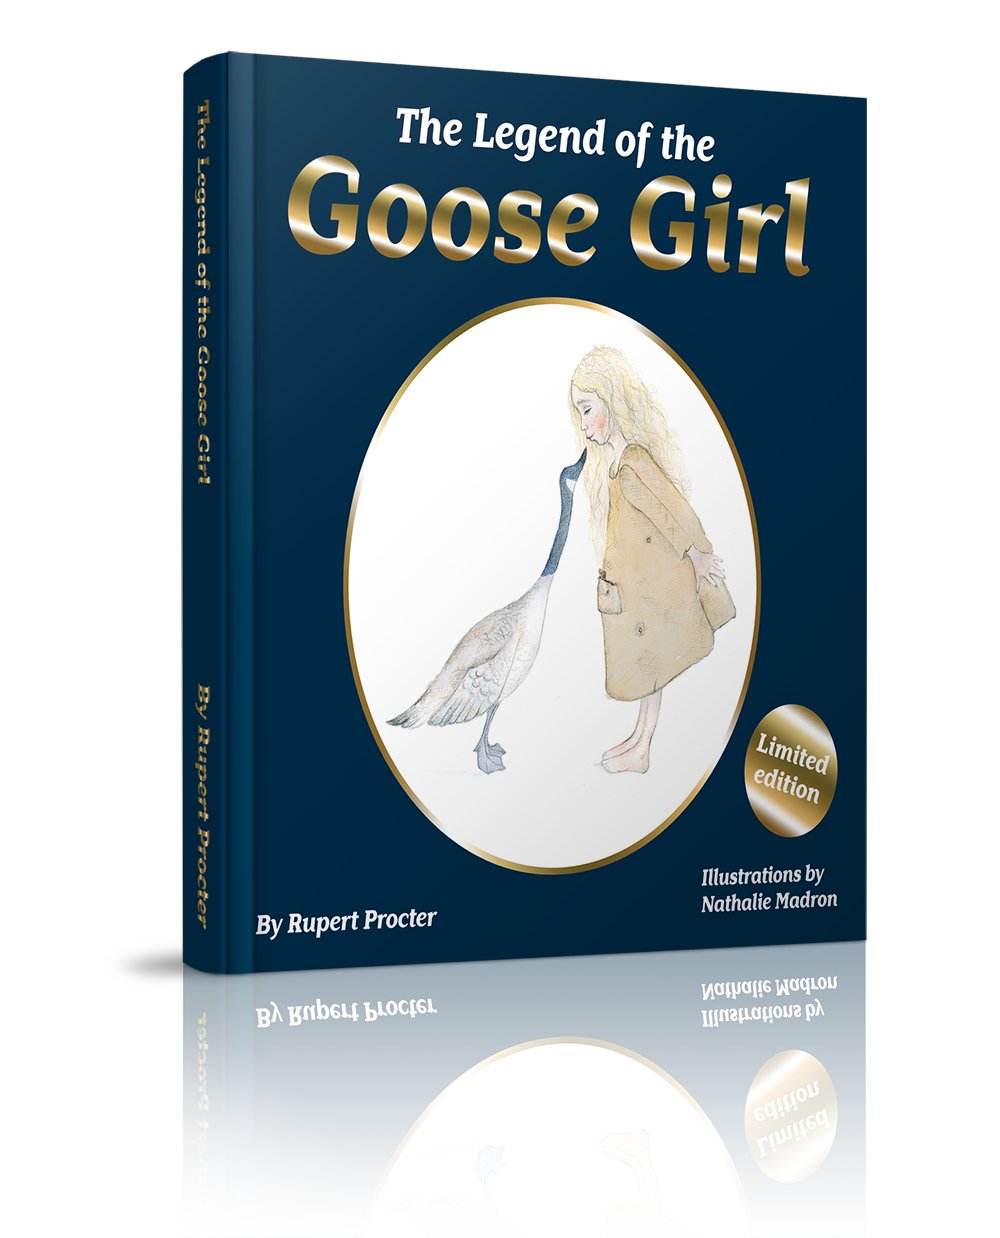 The Legend of the Goose Girl